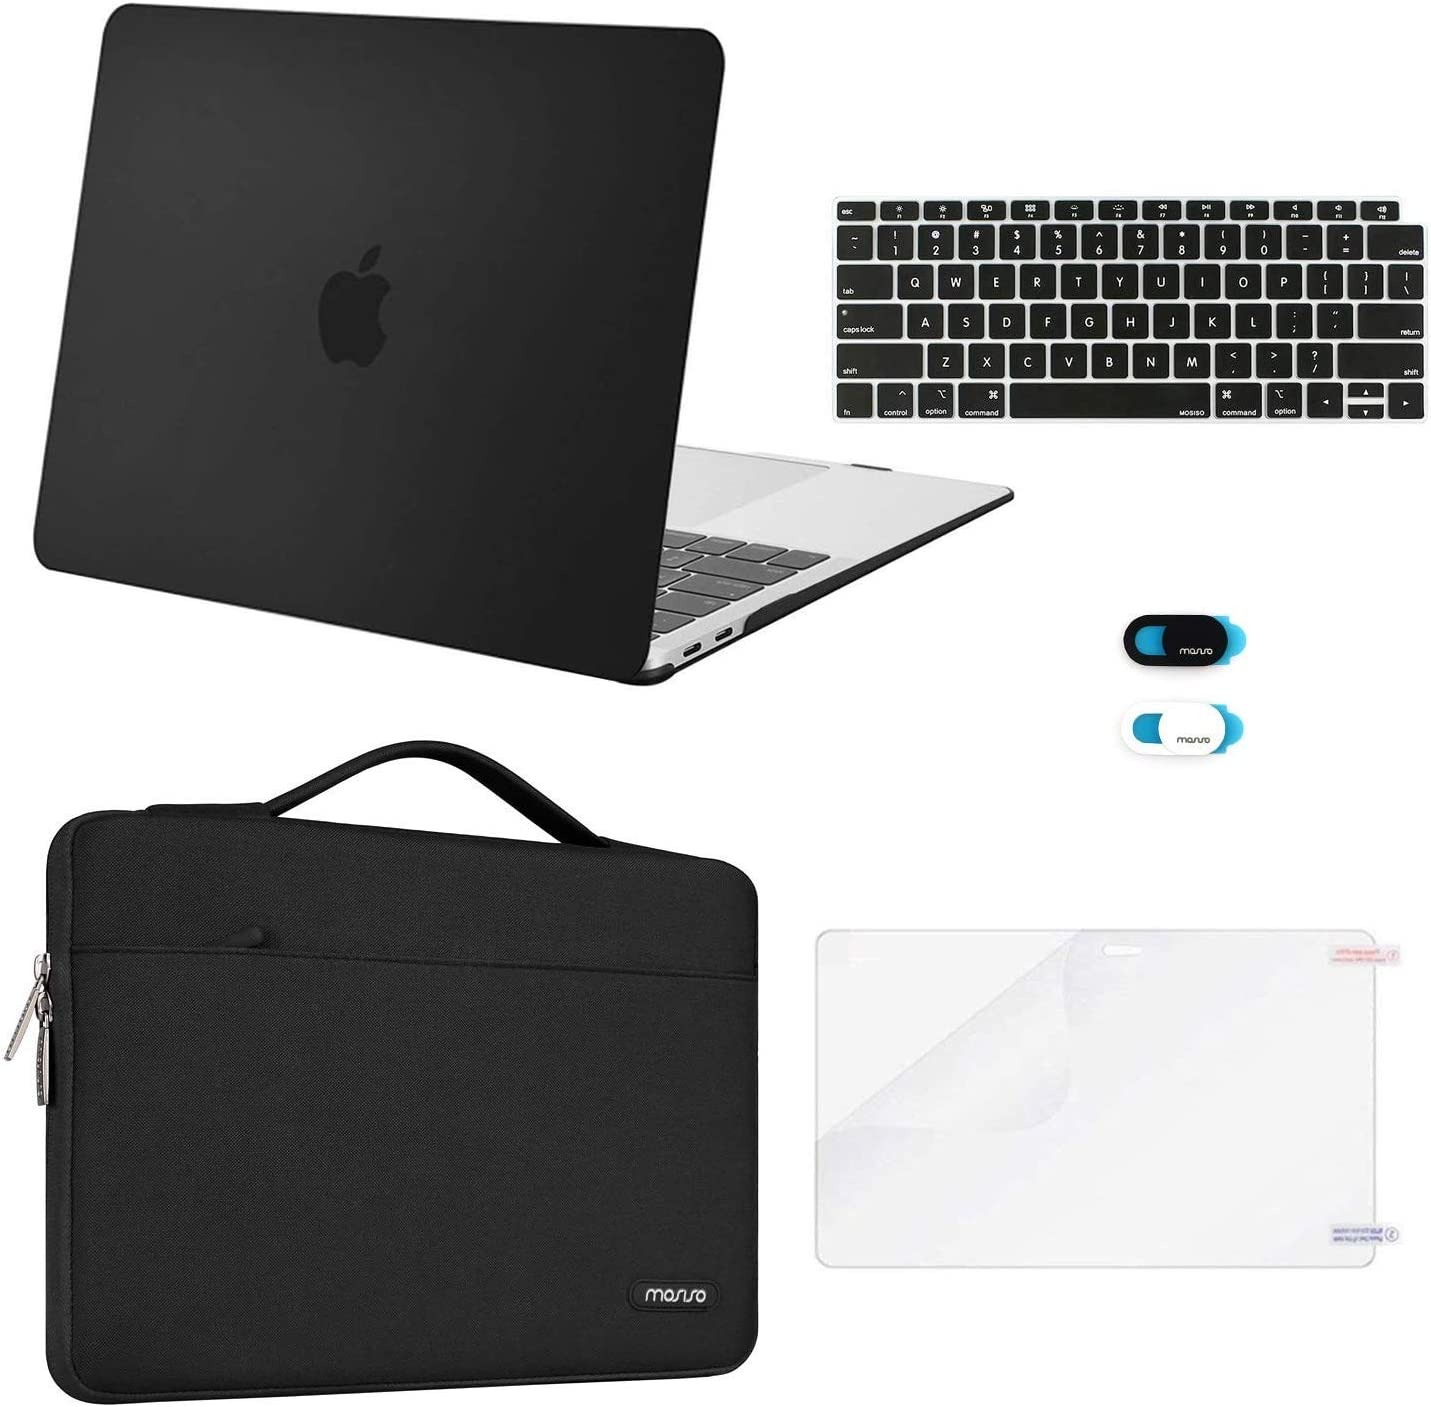 MOSISO MacBook Air 13 inch Case 2020 2019 2018 Release A2179 A1932, Plastic Hard Shell&Sleeve Bag&Keyboard Cover&Webcam Cover&Screen Protector Compatible with MacBook Air 13 inch Retina, Black